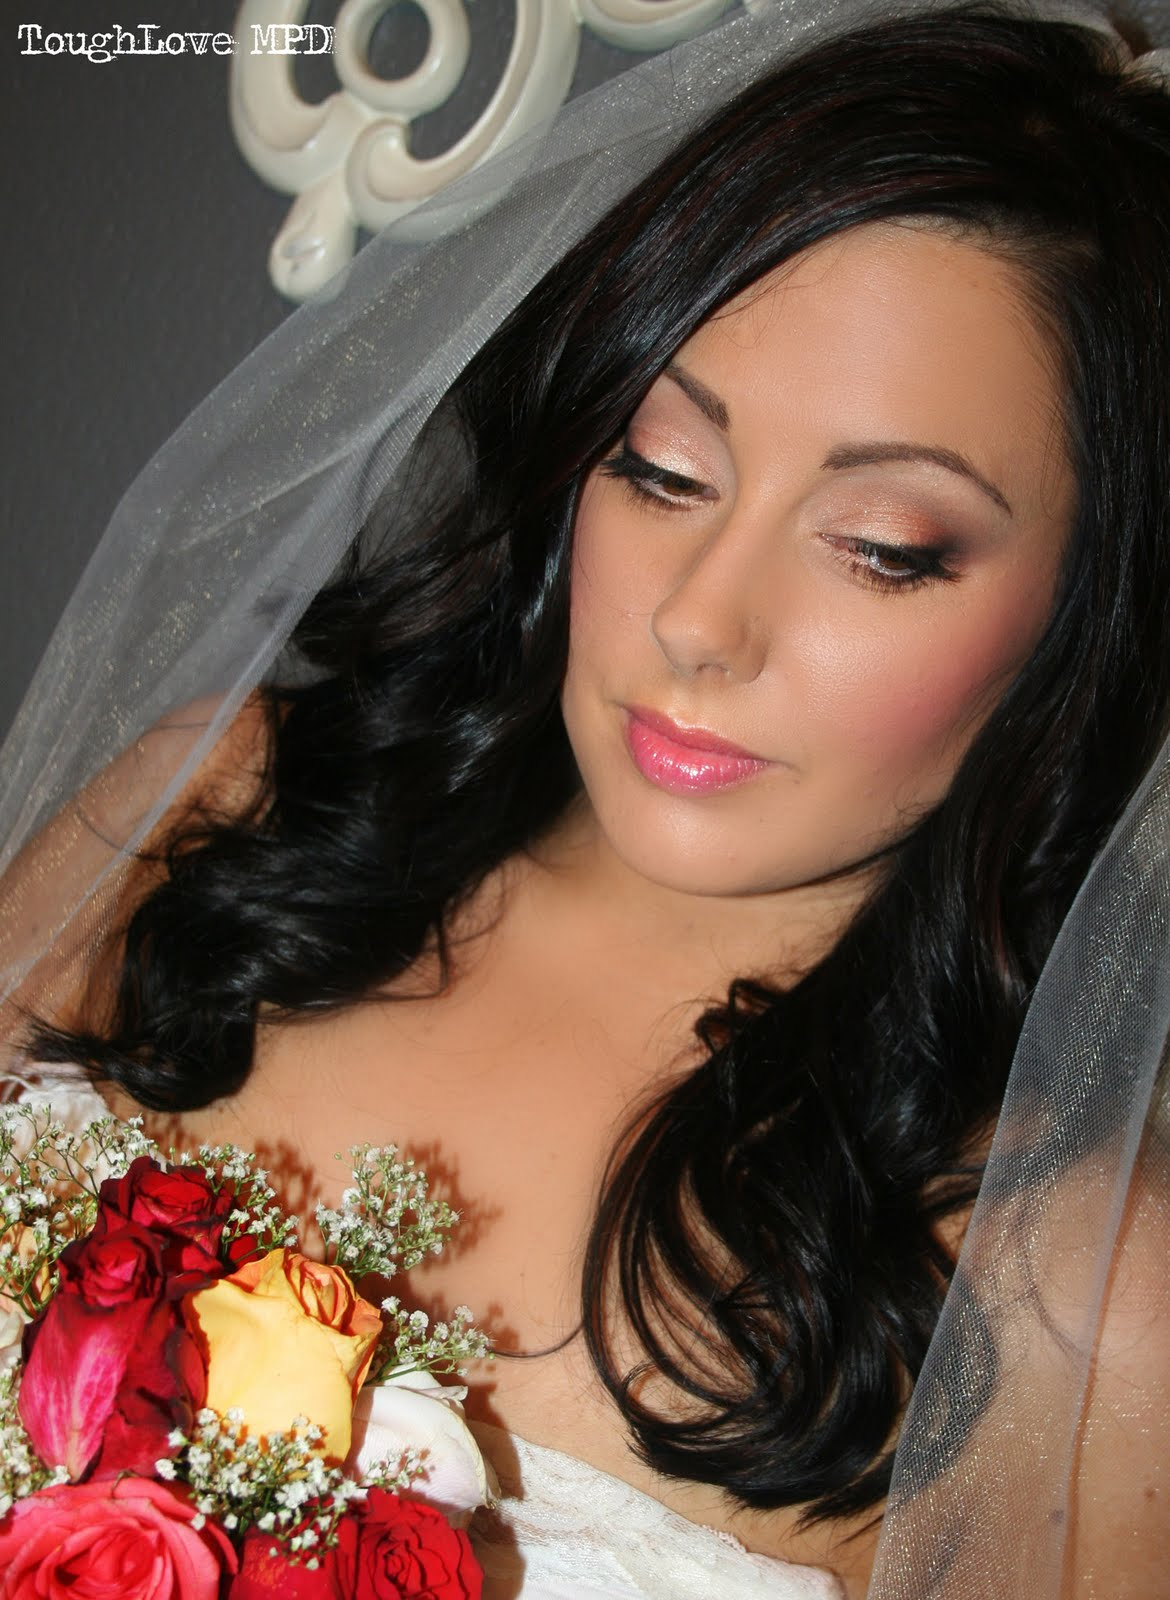 Wedding Makeup Makeup By Caitlyn Michelle: Make-up Looks Collection: Wedding Make-up Looks Collection